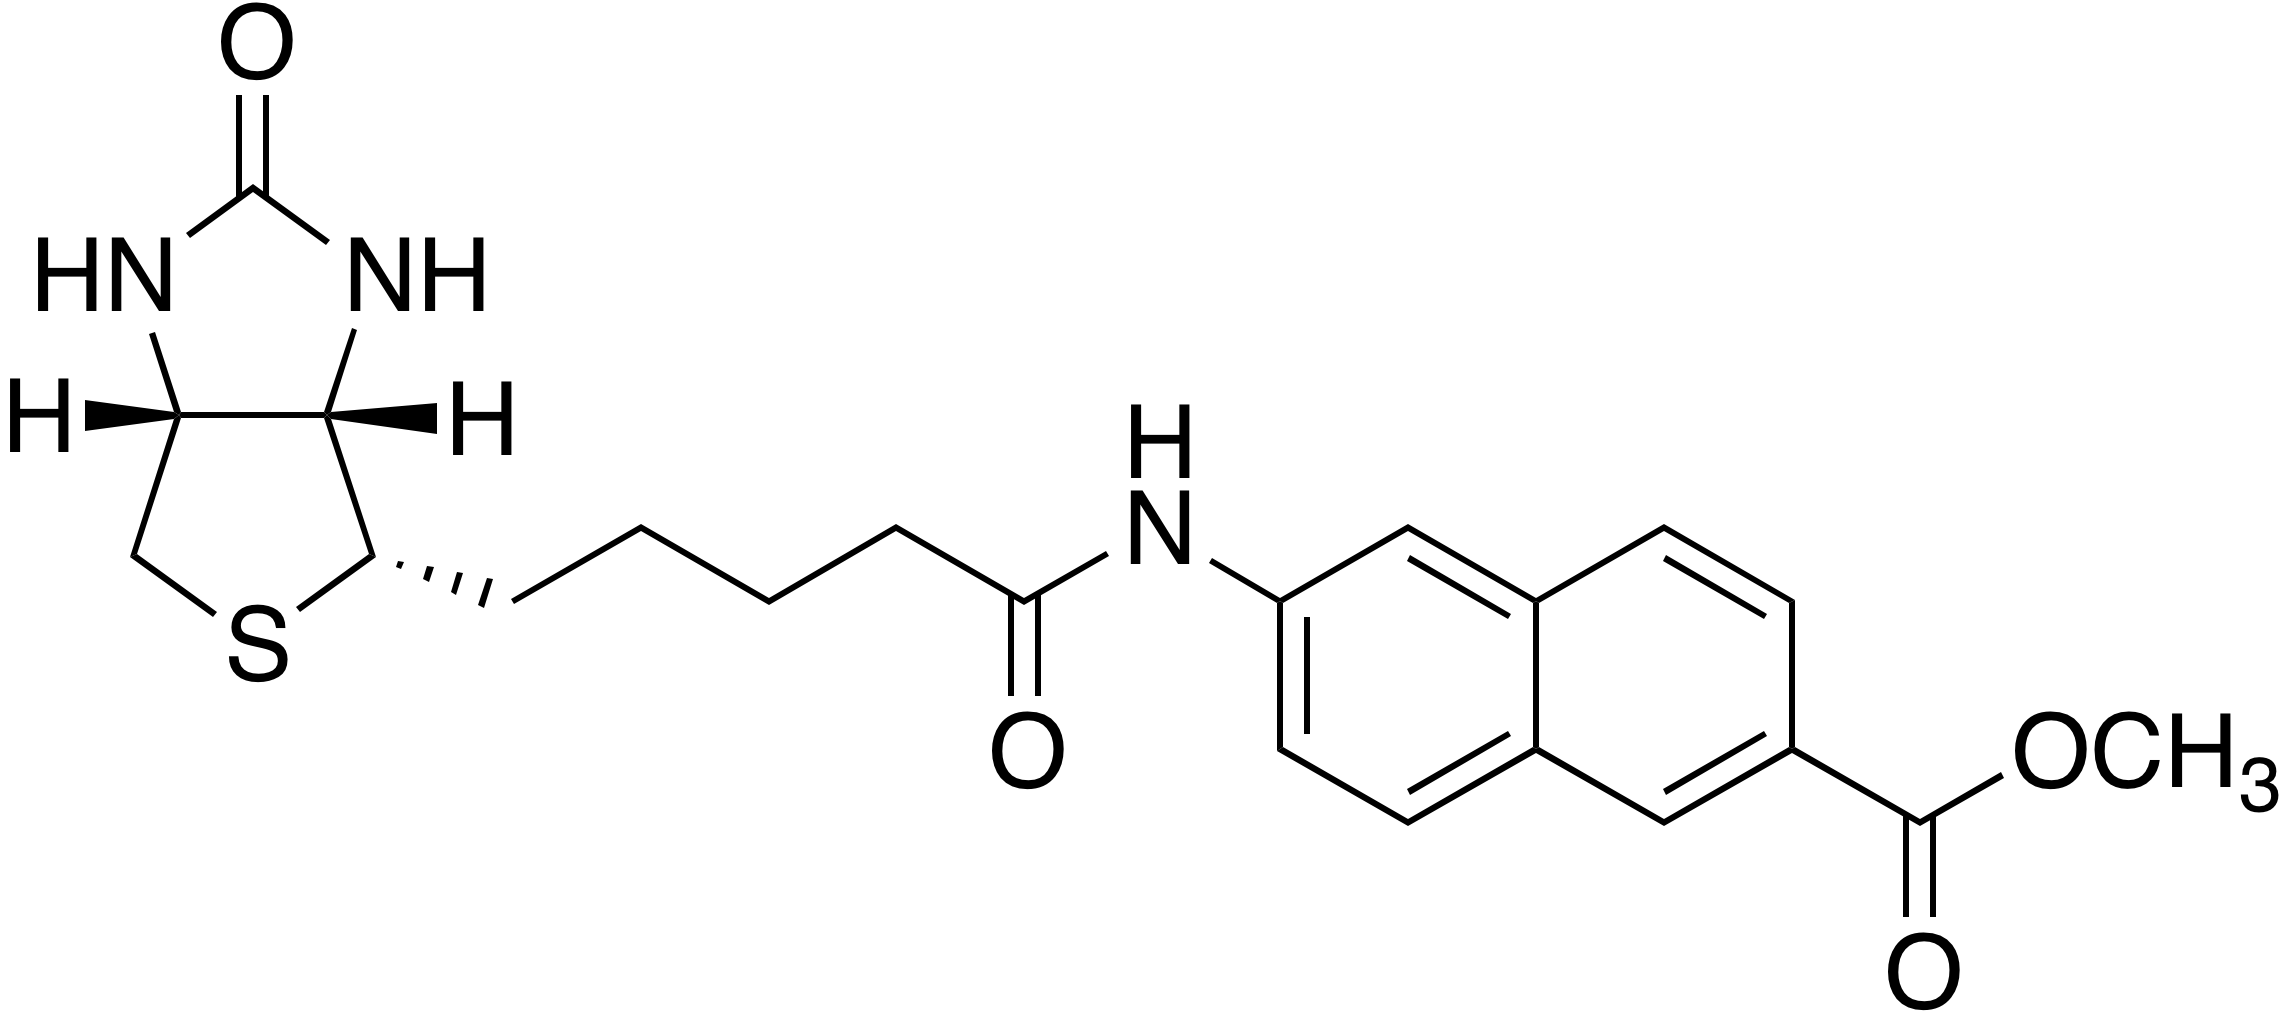 Methyl N-Biotinyl-6-amino-2-naphthonate